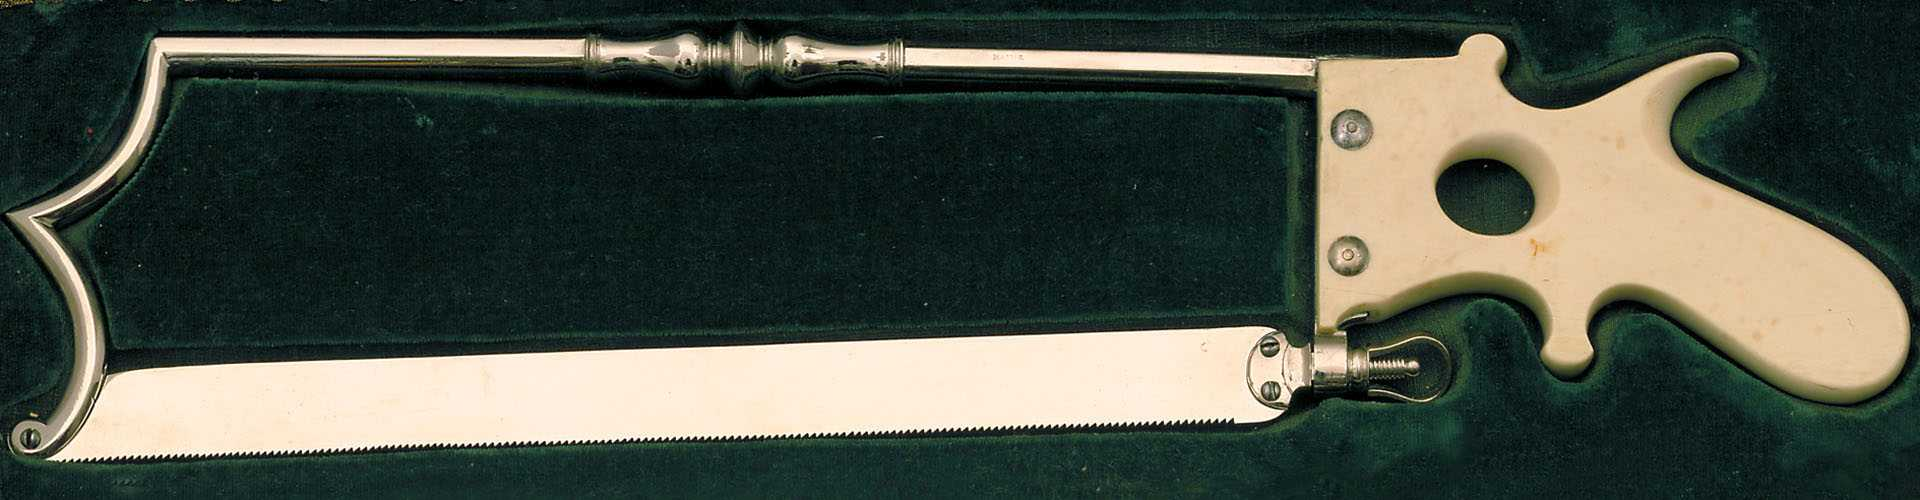 Ferri per guarire: Lancets and Surgical Instruments from the 18th and 19th Centuries